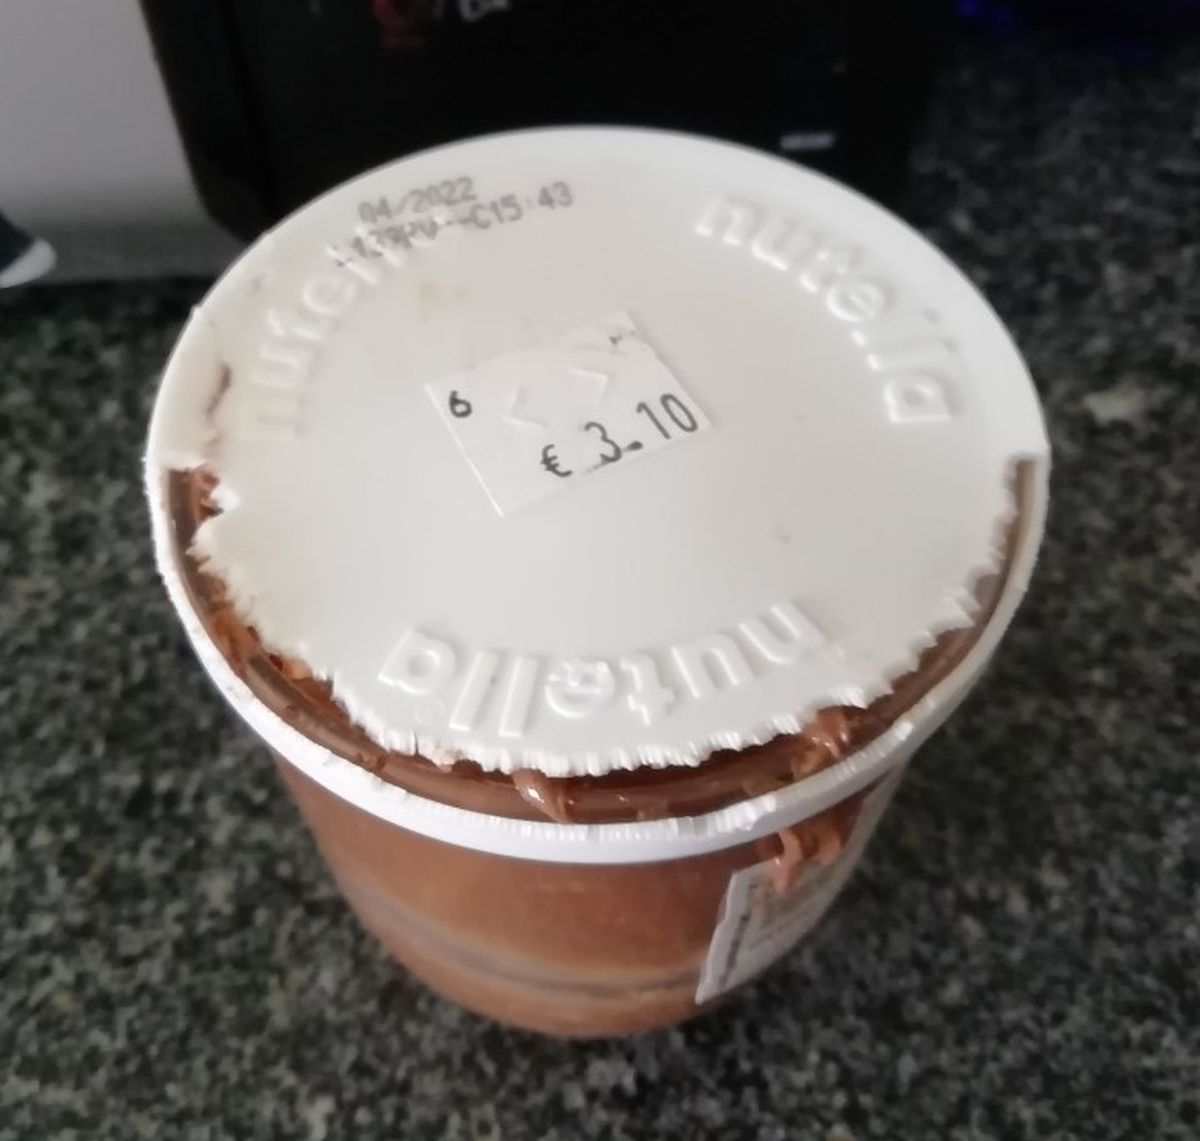 Plastic lid is no match for French mice